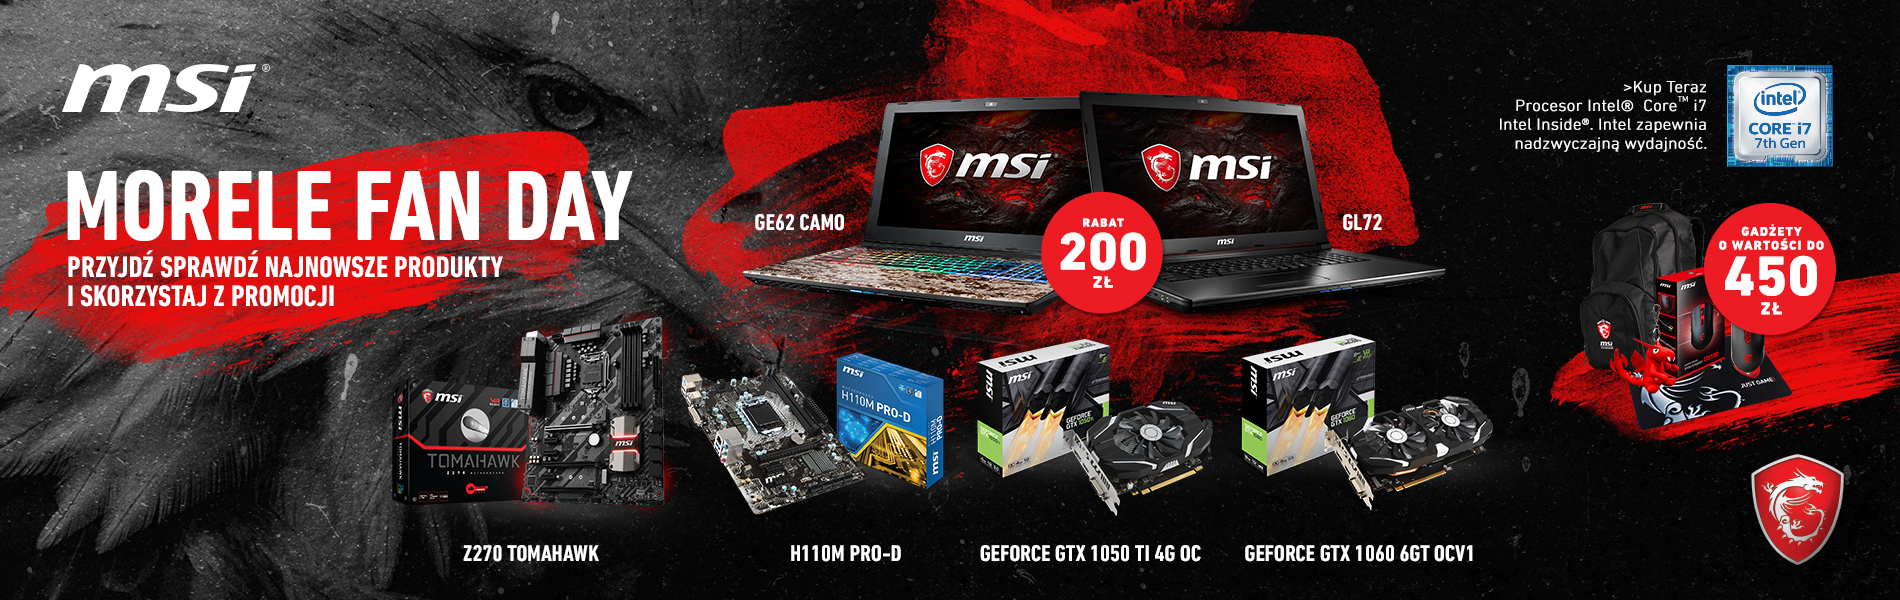 msi-morfanday-1900x600.png